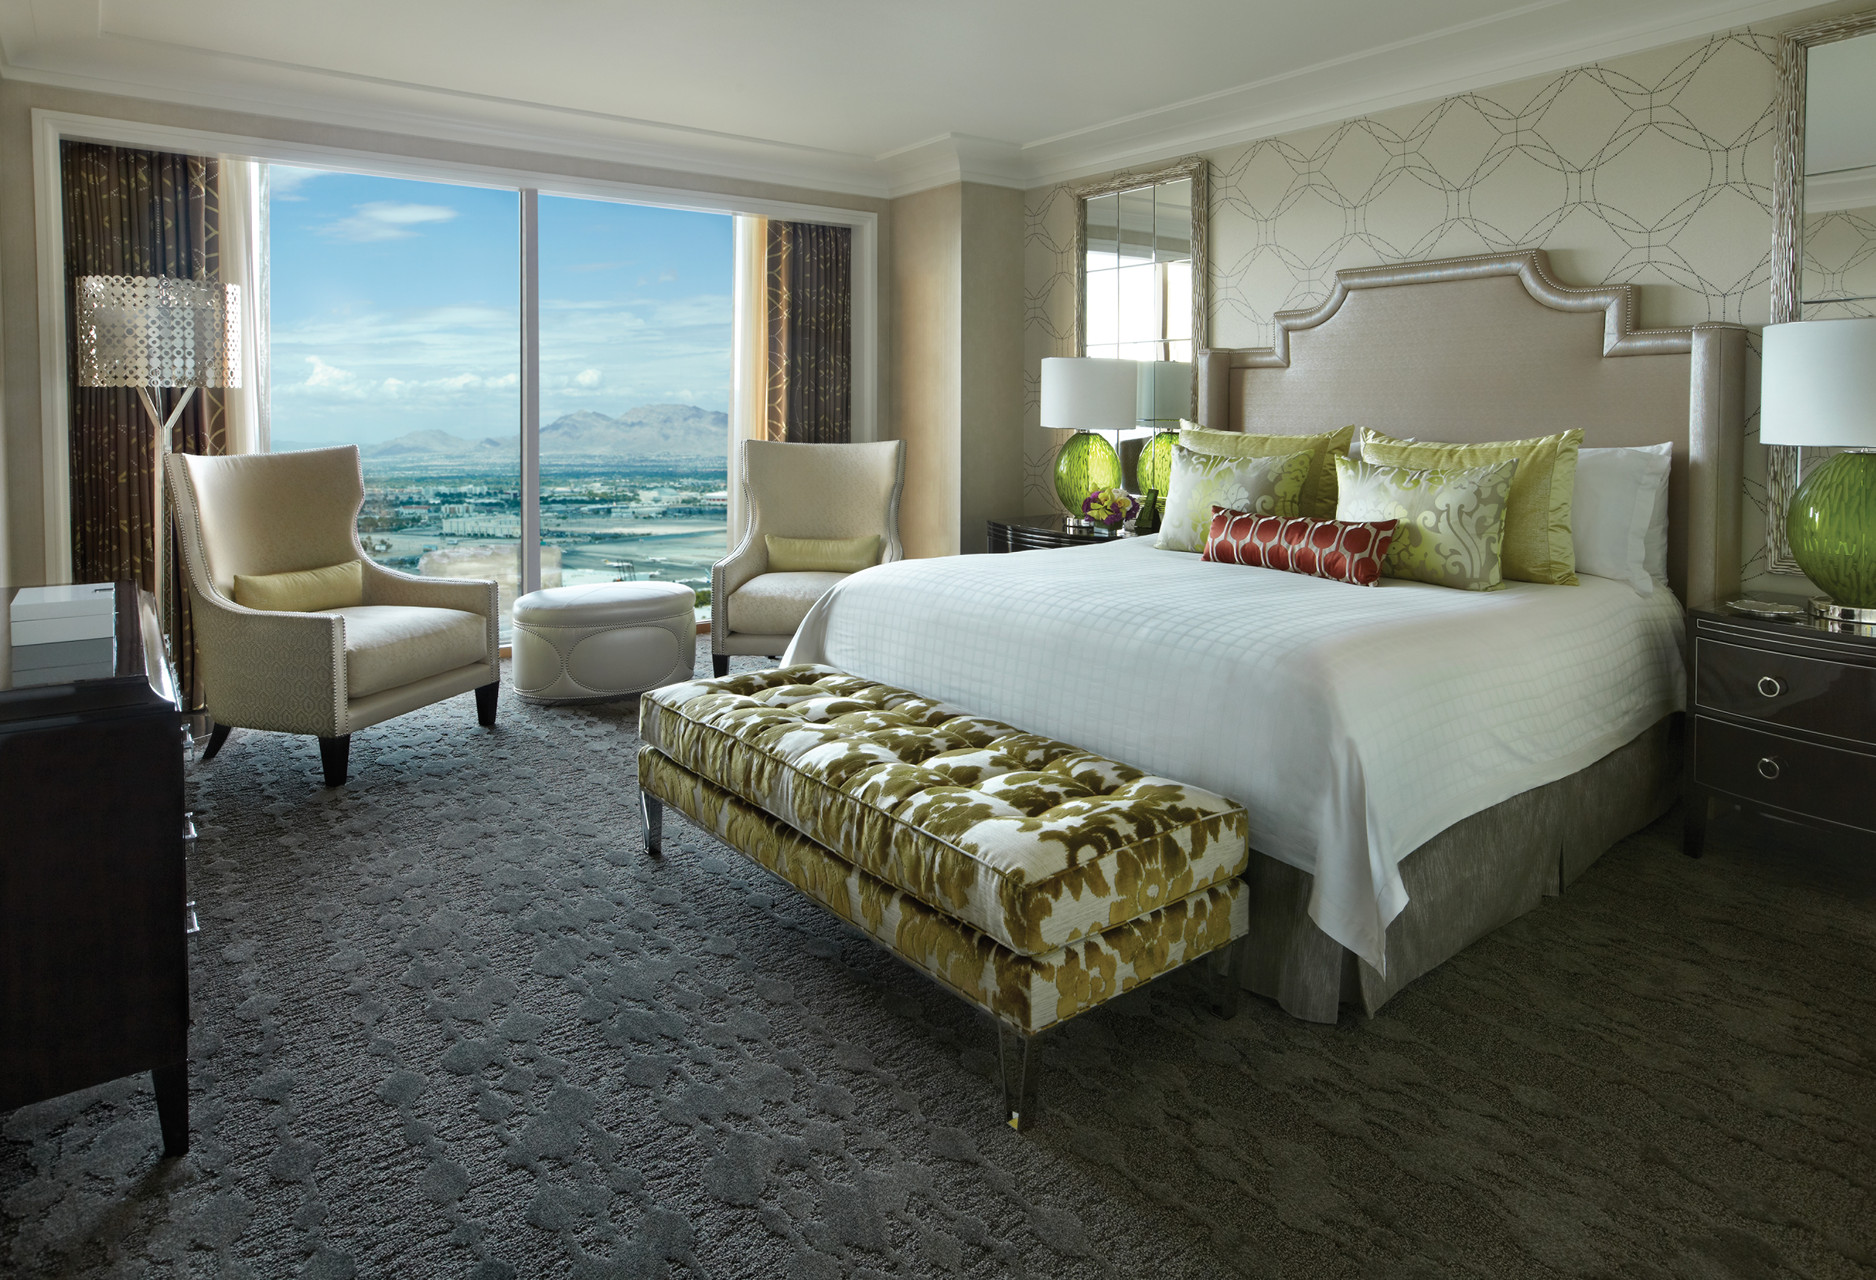 Las Vegas Hotels With 2 Bedroom Suites Bellagio Las Vegas 2 Bedroom Suites 659 All Inclusive Las Vegas